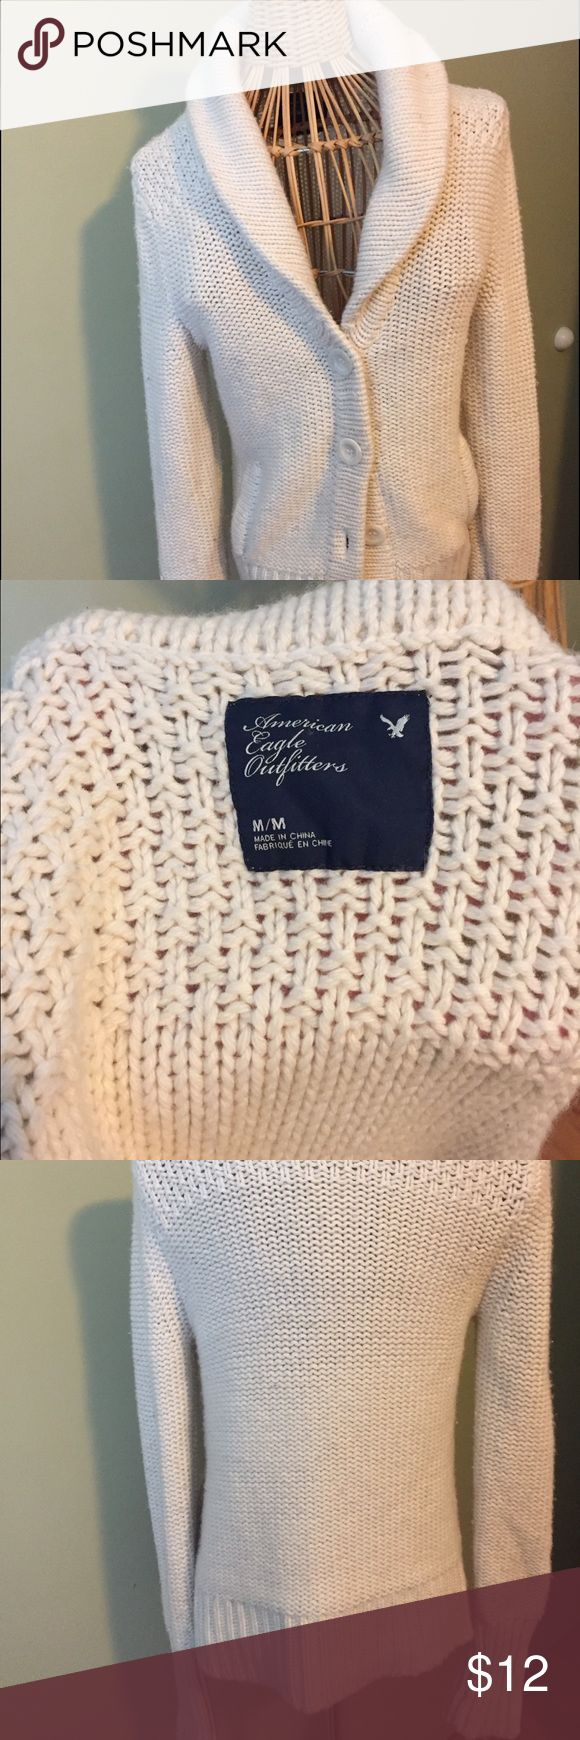 American Eagle cream sweater American Eagle cream sweater. Great condition. American Eagle Outfitters Sweaters Cardigans